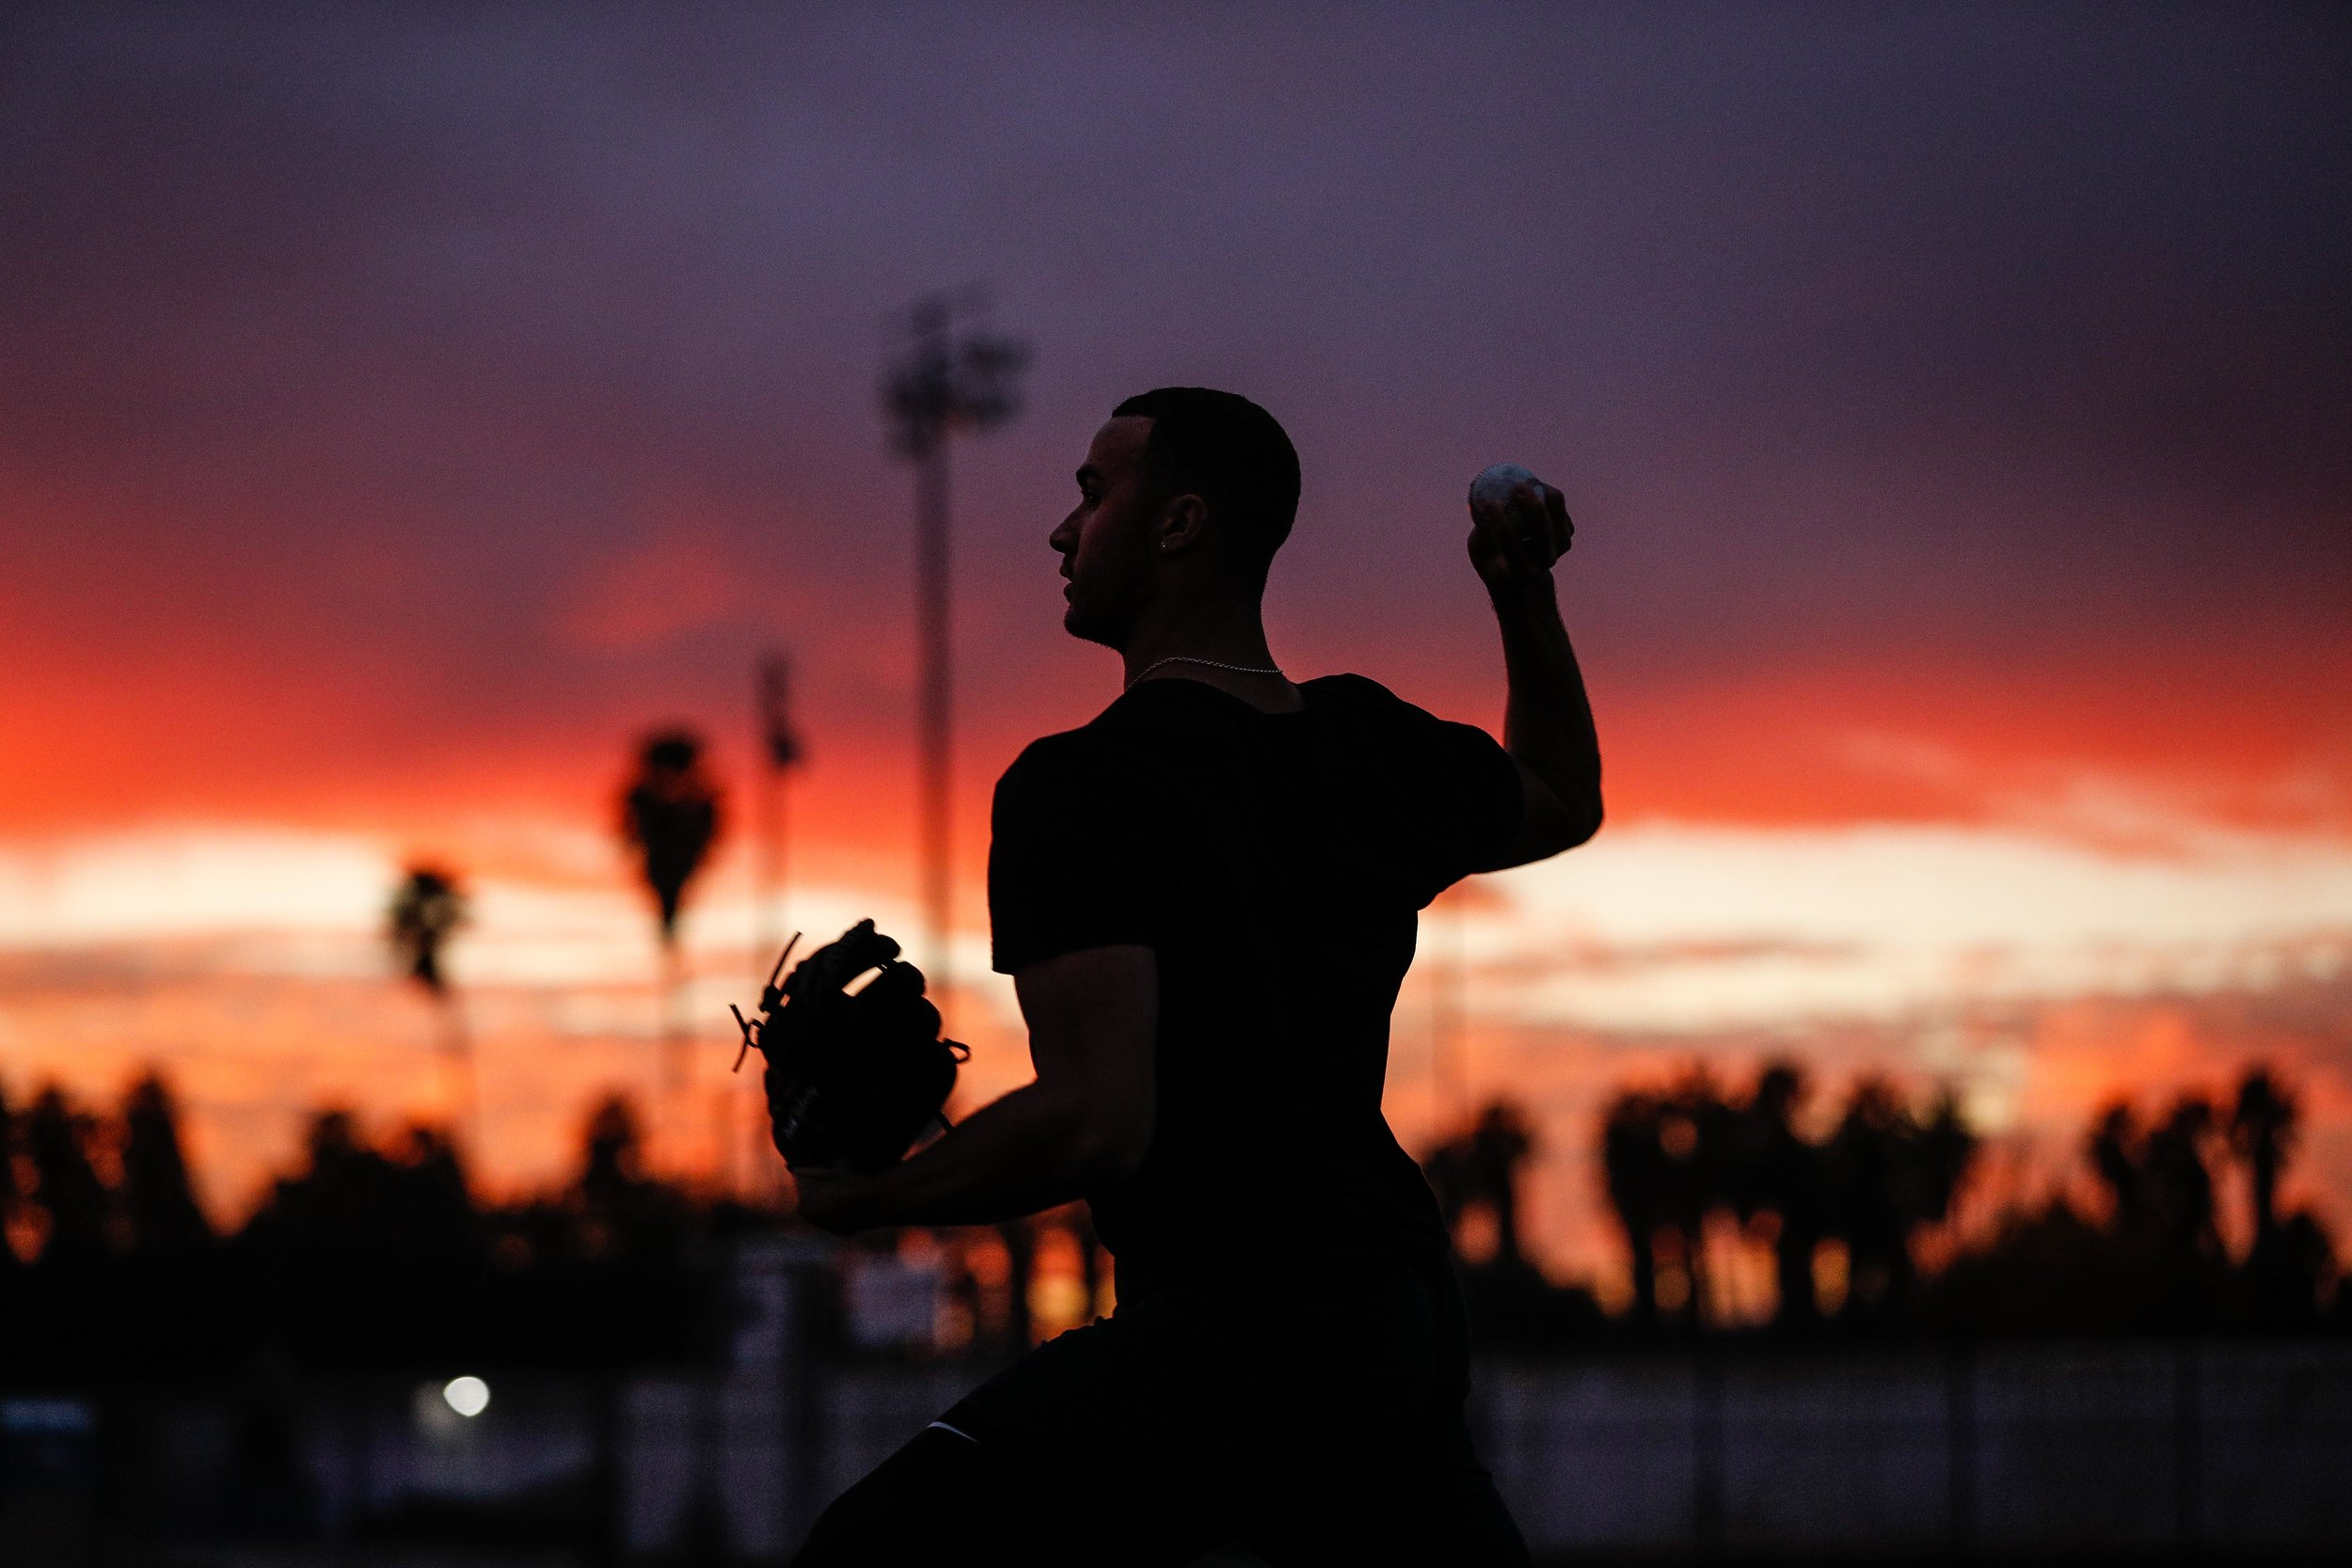 St. Louis Cardinals pitcher Jack Flaherty throws to former teammates at a practice in Los Angeles, Calif. on Dec. 10, 2018.